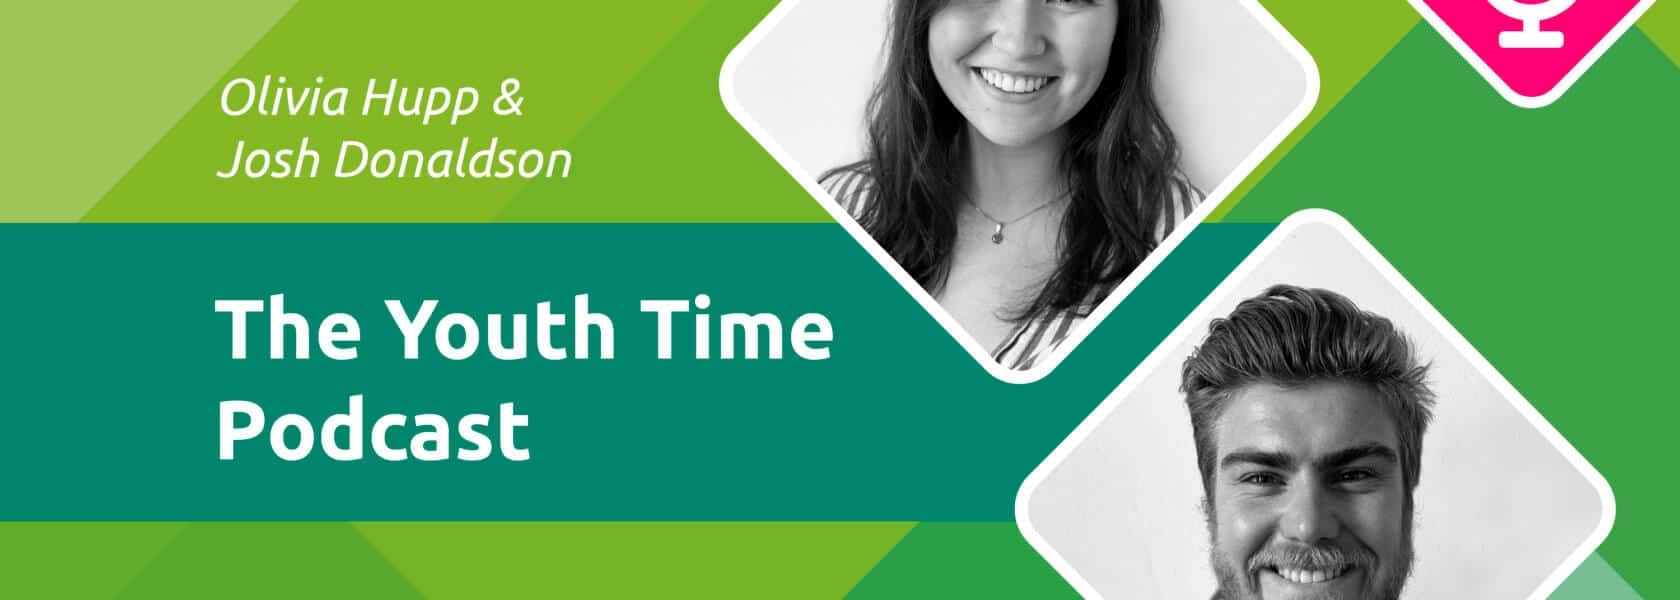 Youth Time International Movement Launches The Youth Time Podcast